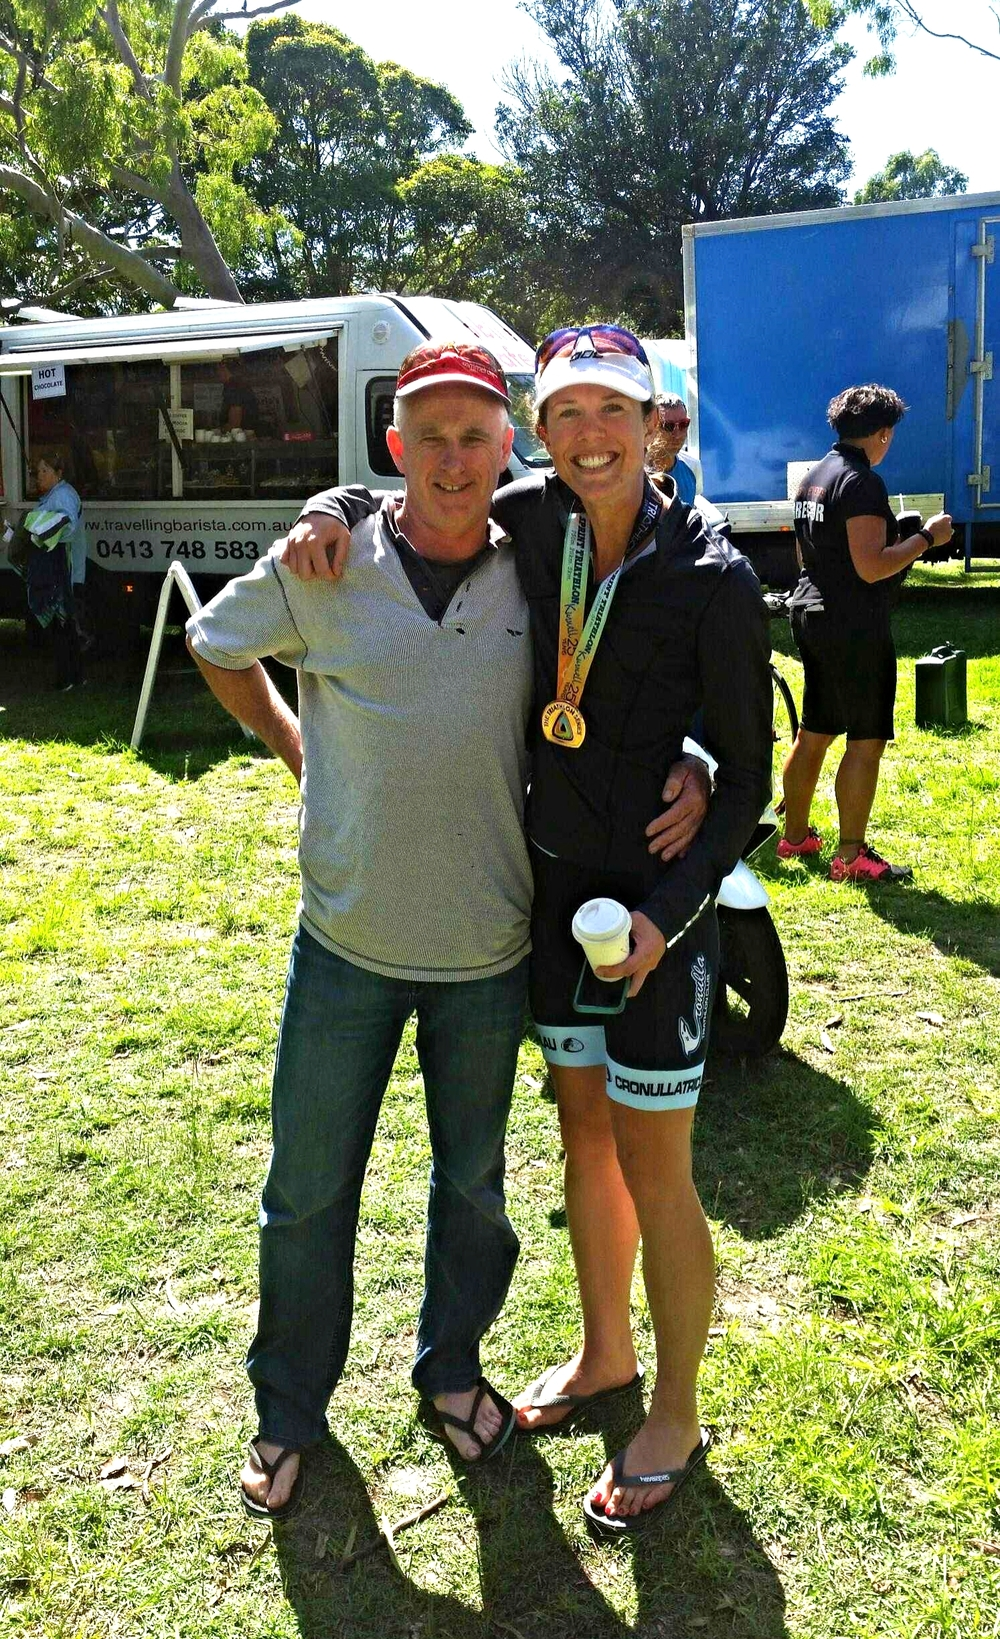 Laura Kelly - Sydney, Australia - Triathlete & Food Enthusiast